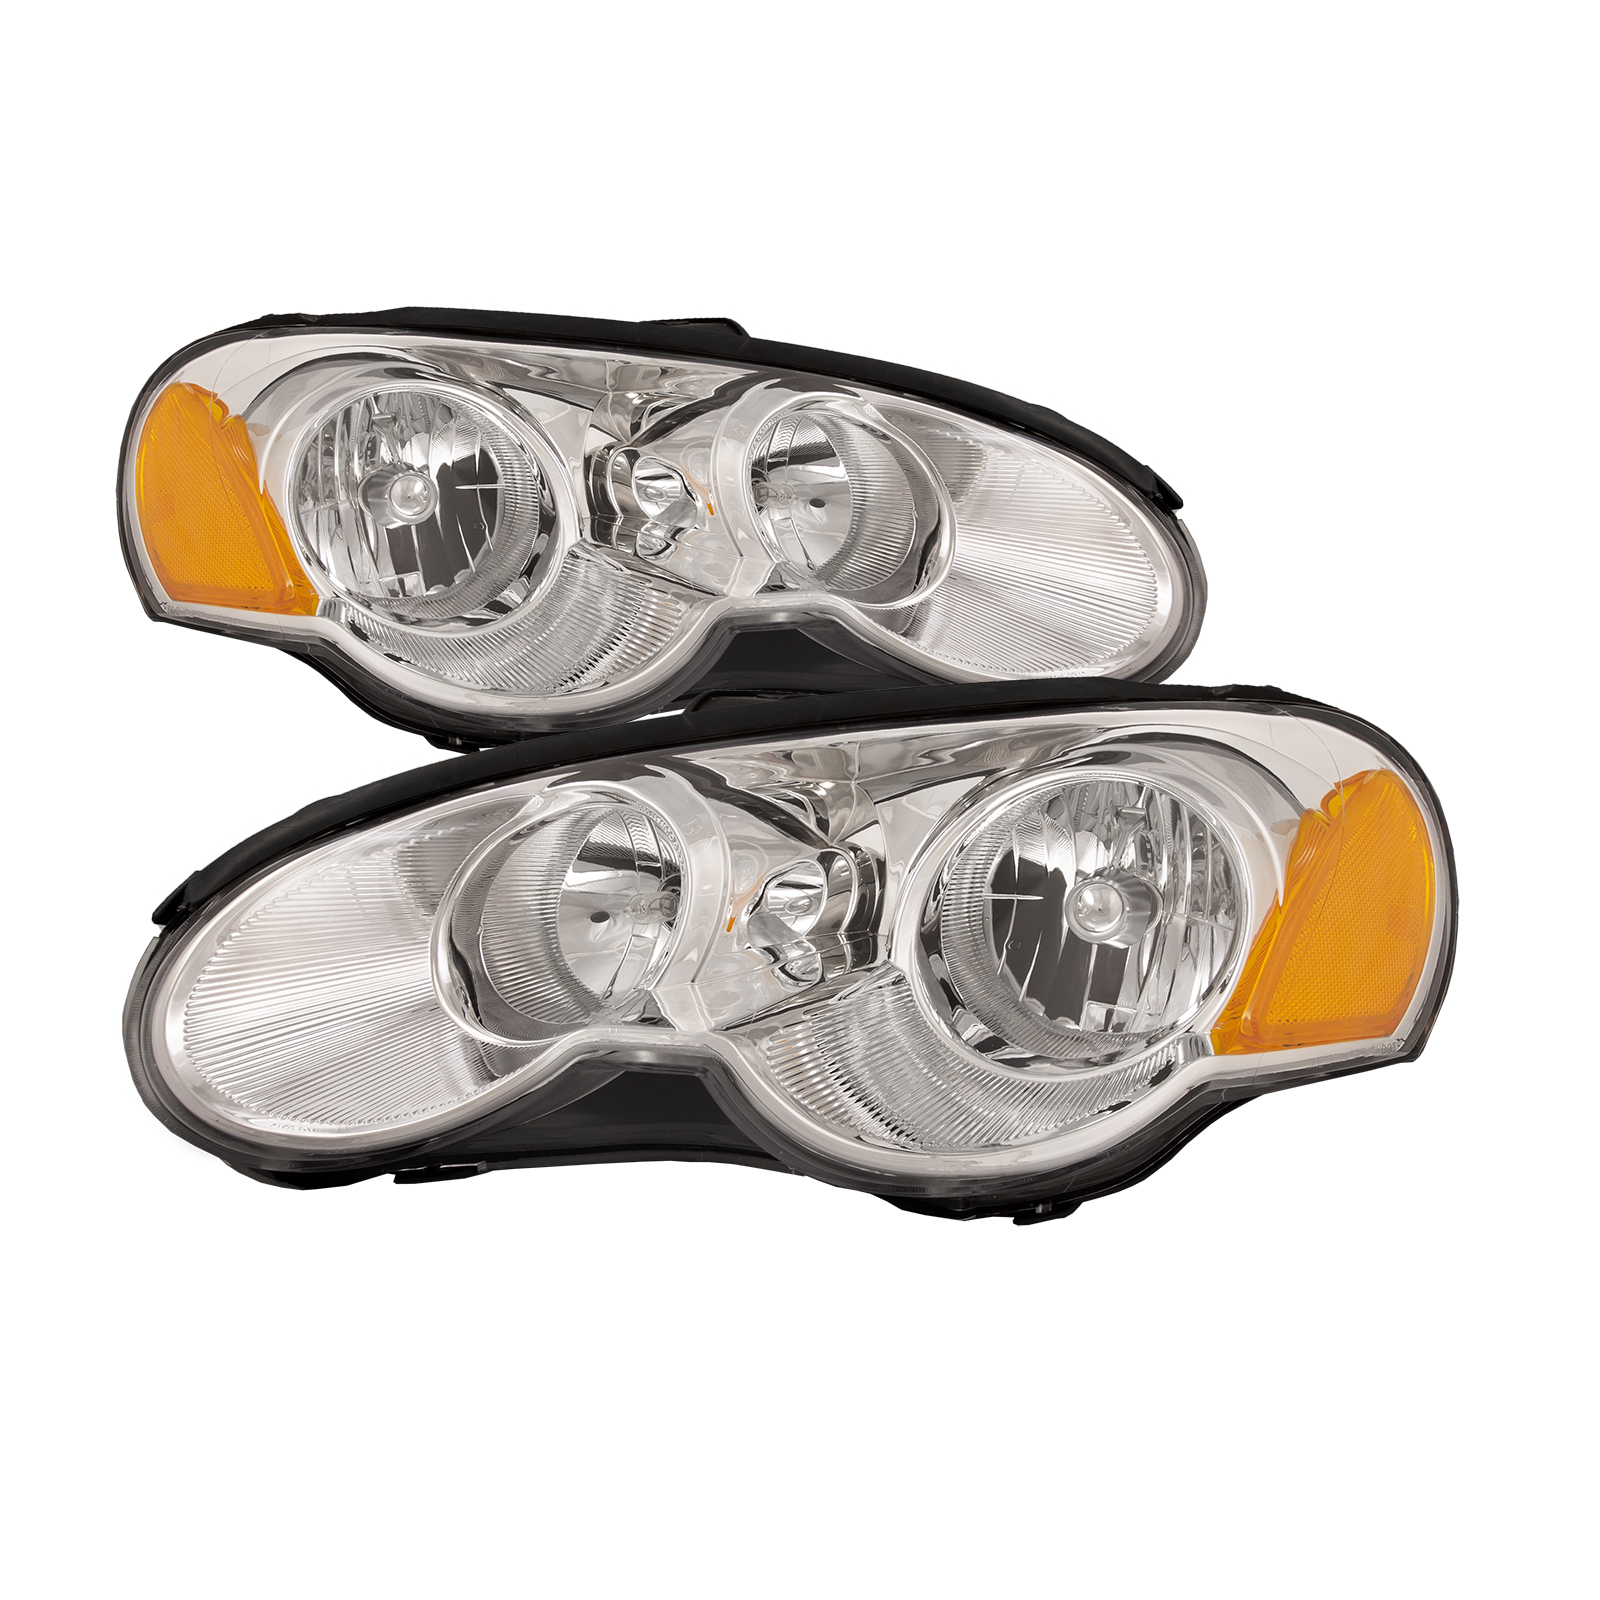 Details About Fits 03 05 Chrysler Sebring Coupe Headlights Headlamps Pair Set Halogen New